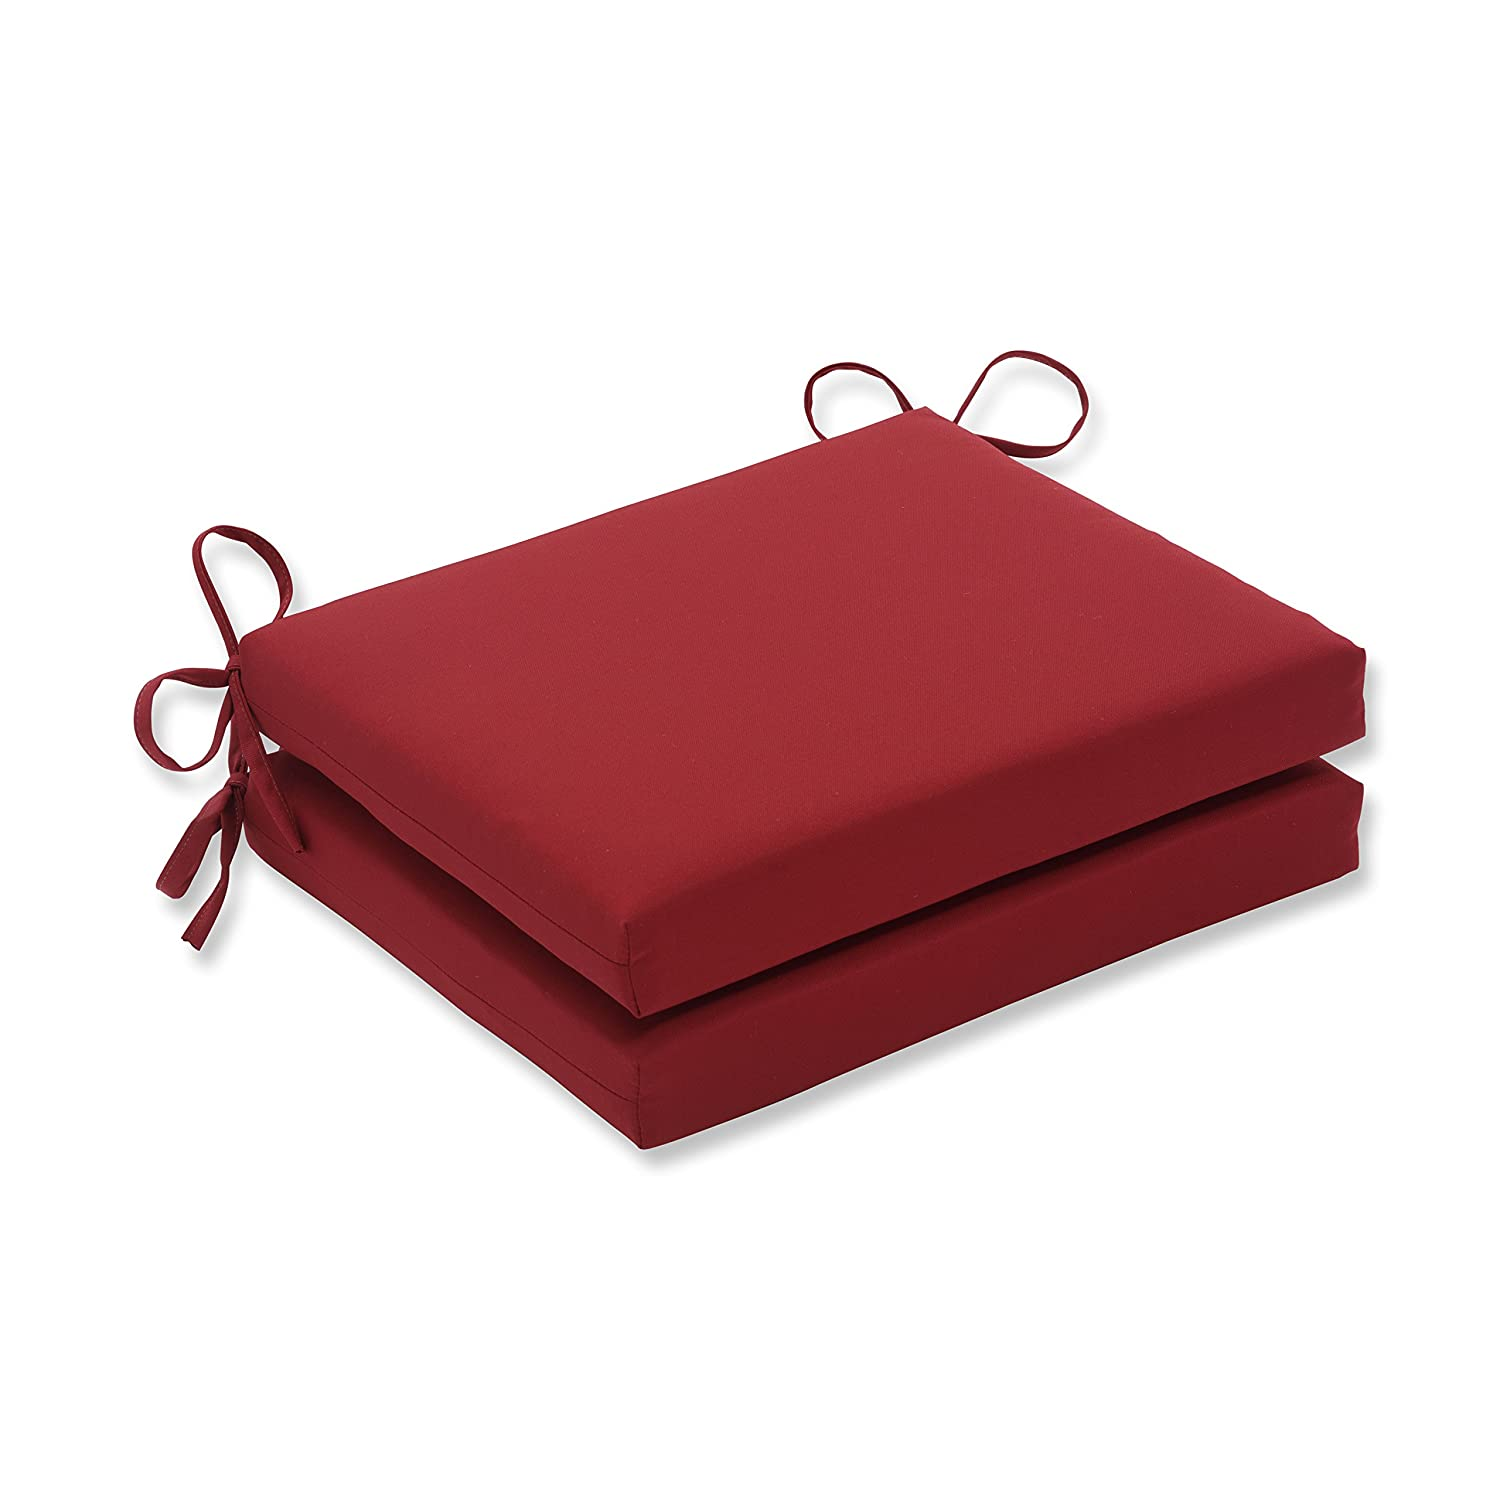 Pillow Perfect Indoor Outdoor Red Solid Seat Cushion Squared, 2-Pack